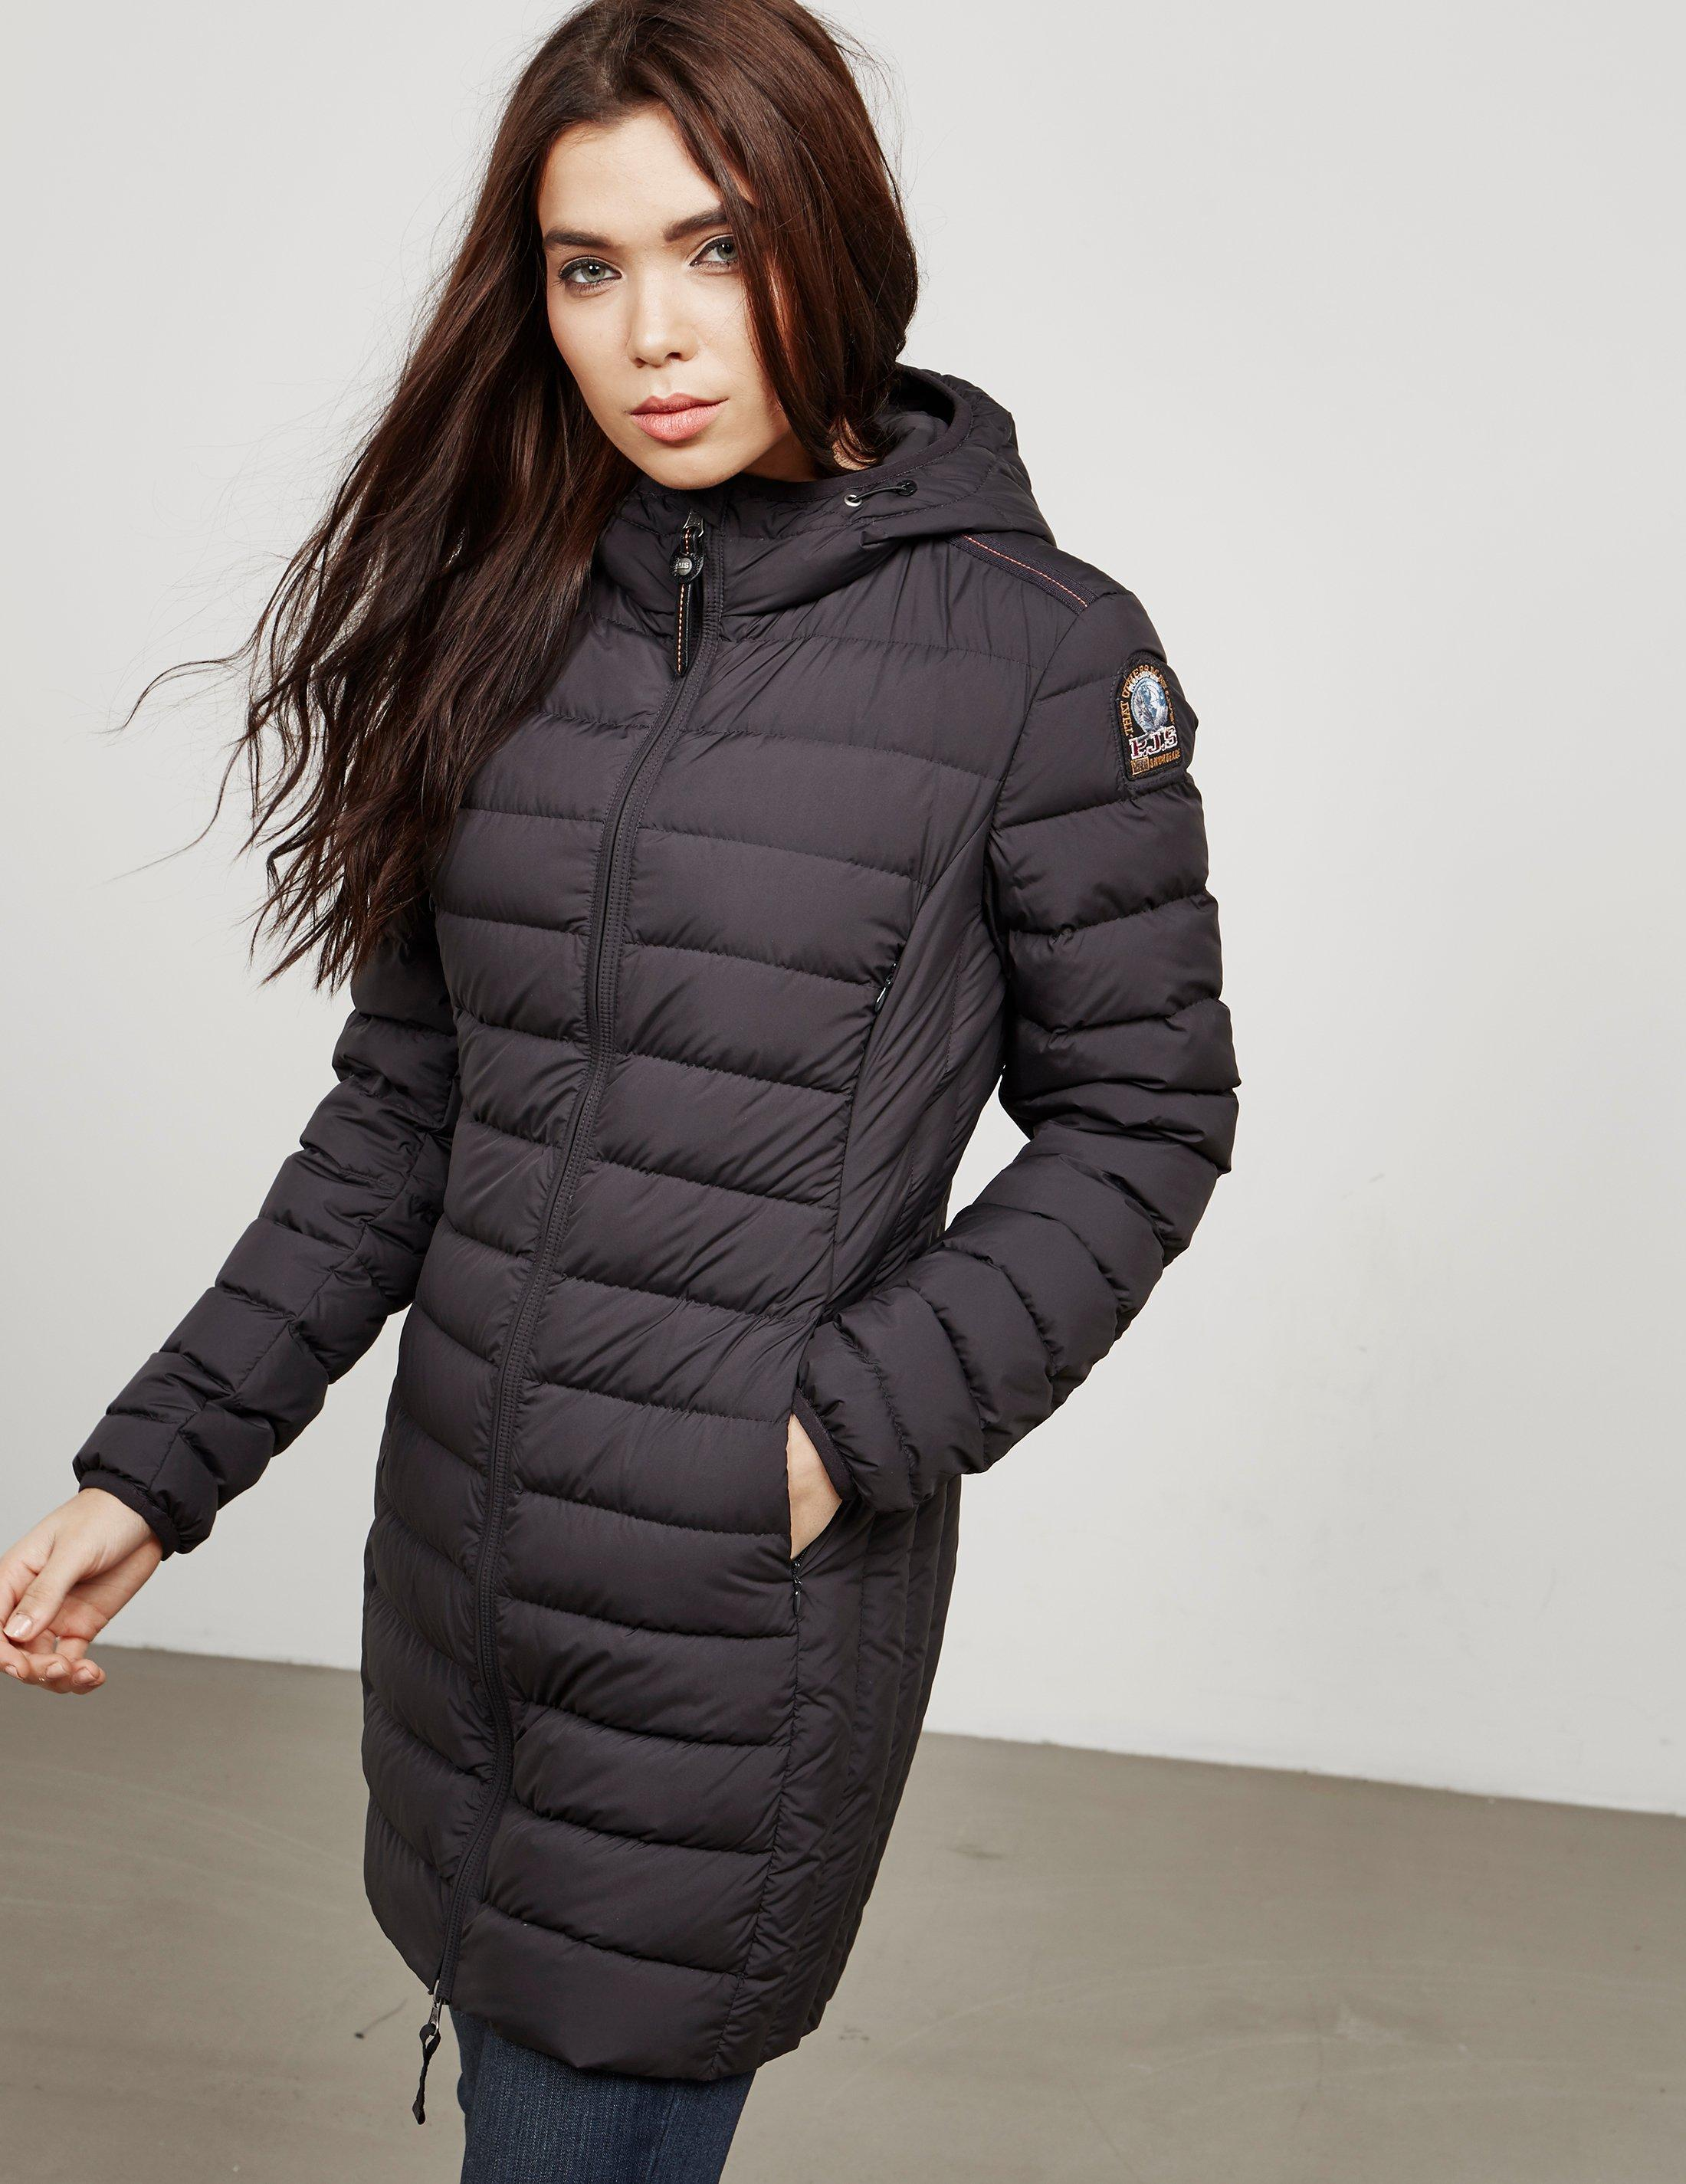 83d93ea8444c Parajumpers Irene Padded Jacket in Black - Lyst